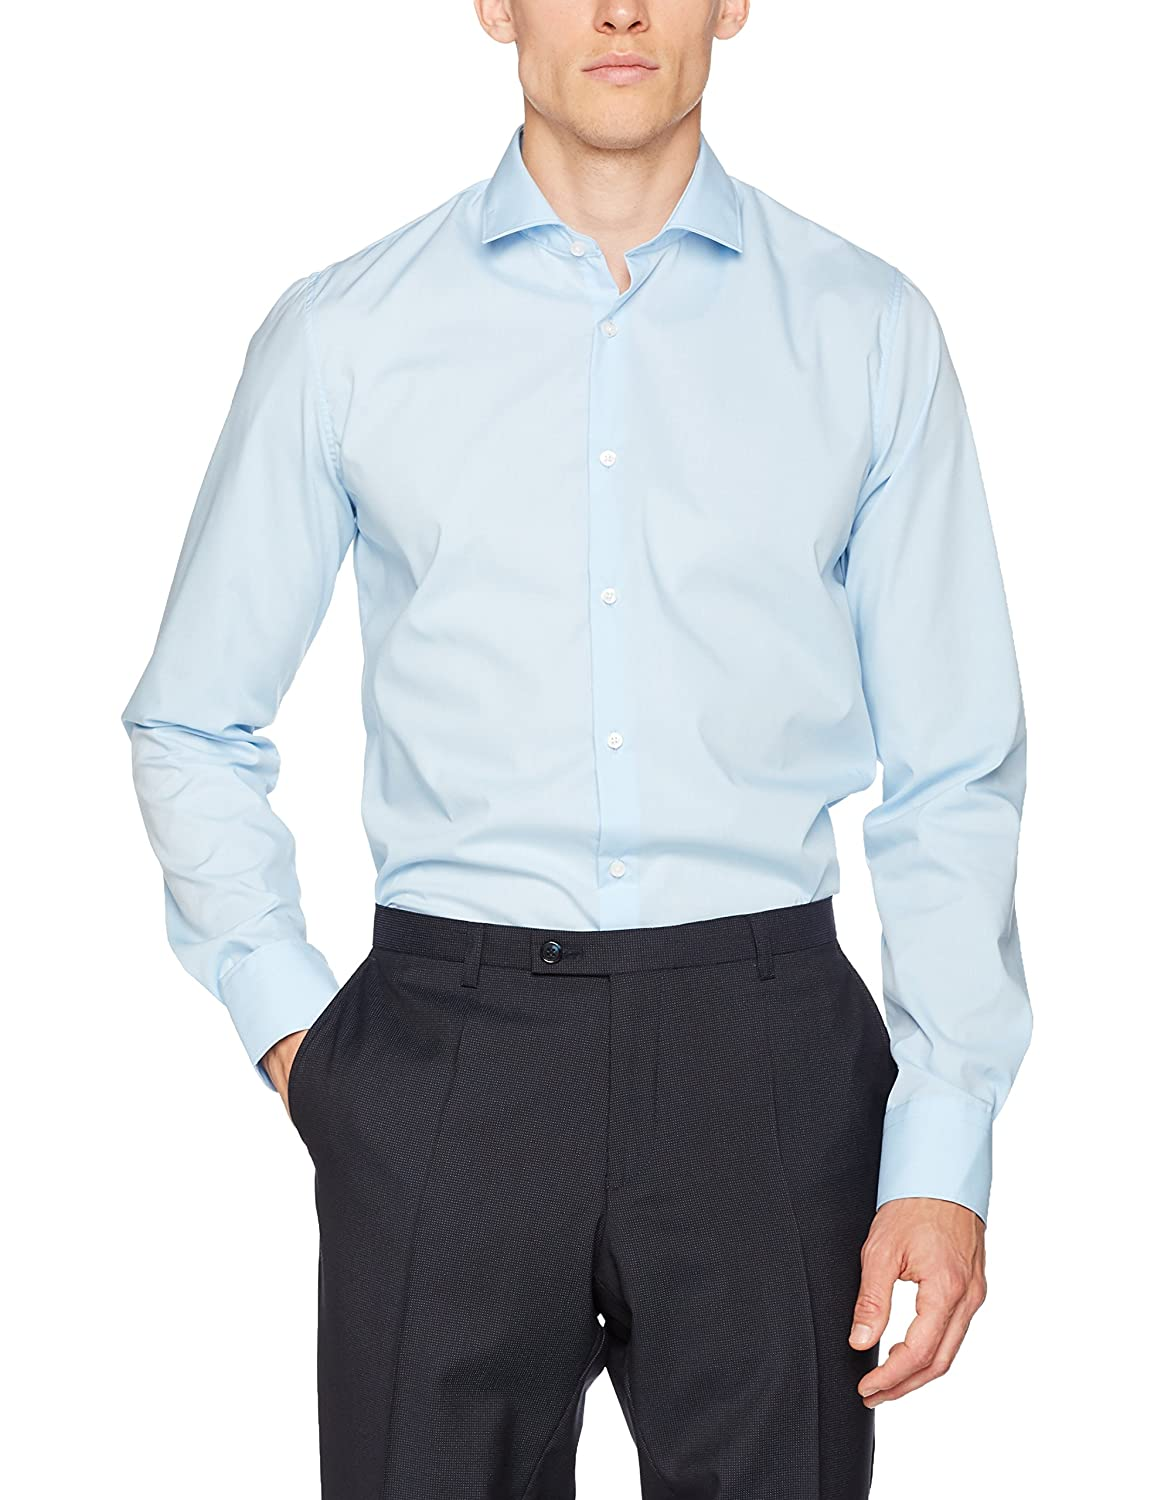 Club of Gents CG Slim-Chris, Camisa de Oficina para Hombre, Azul (Blau 61) 39